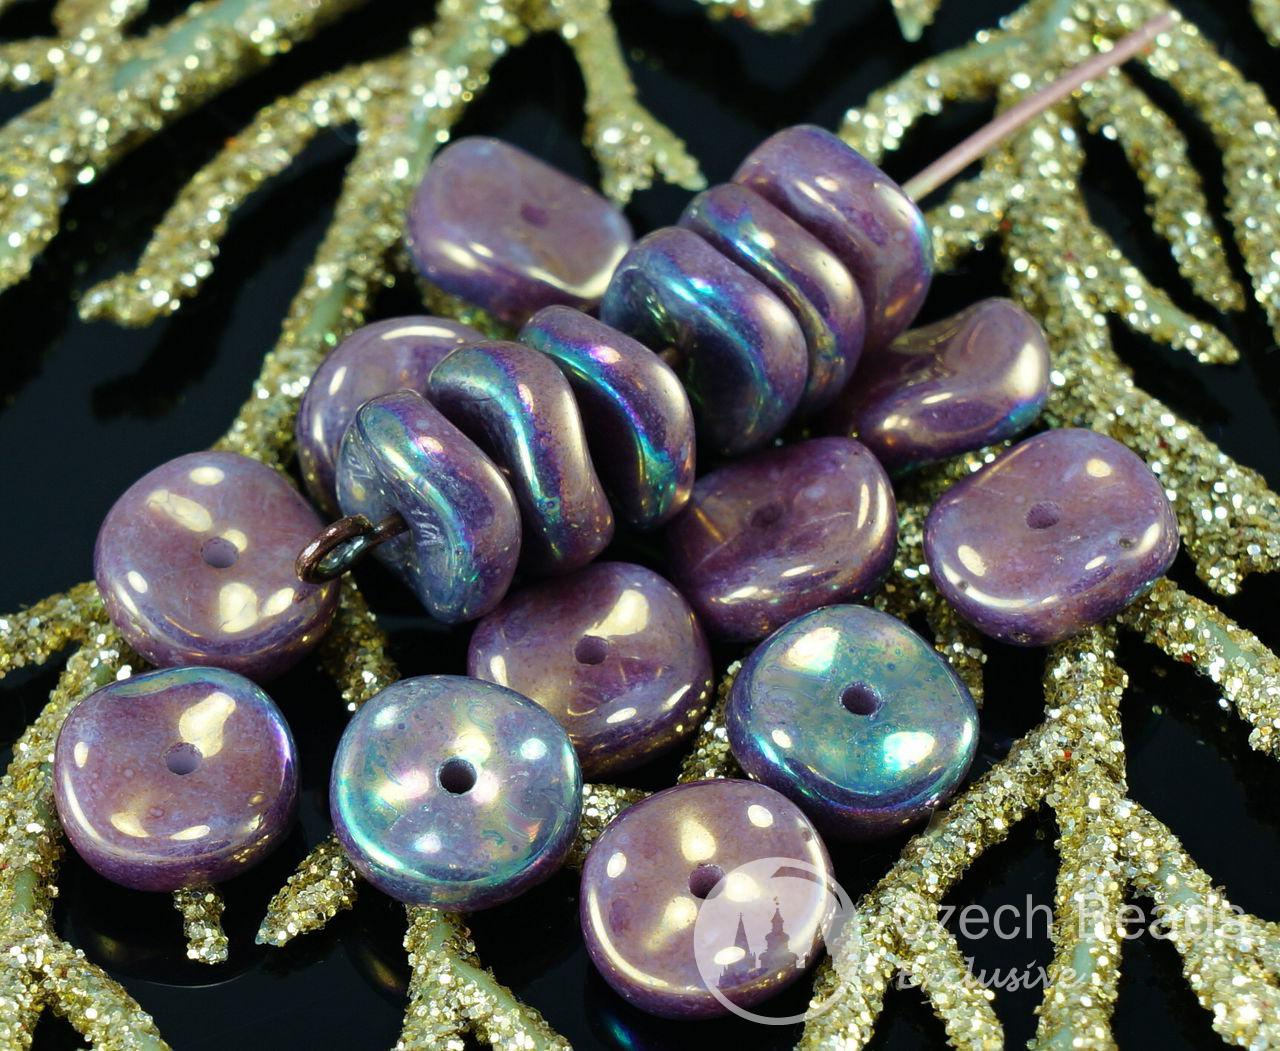 NEW SHAPE 20pcs Purple Iris Luster Waved Flat Round Disk One Hole Czech Glass Beads Disc 8mm for $2.39 from Czech Beads Exclusive